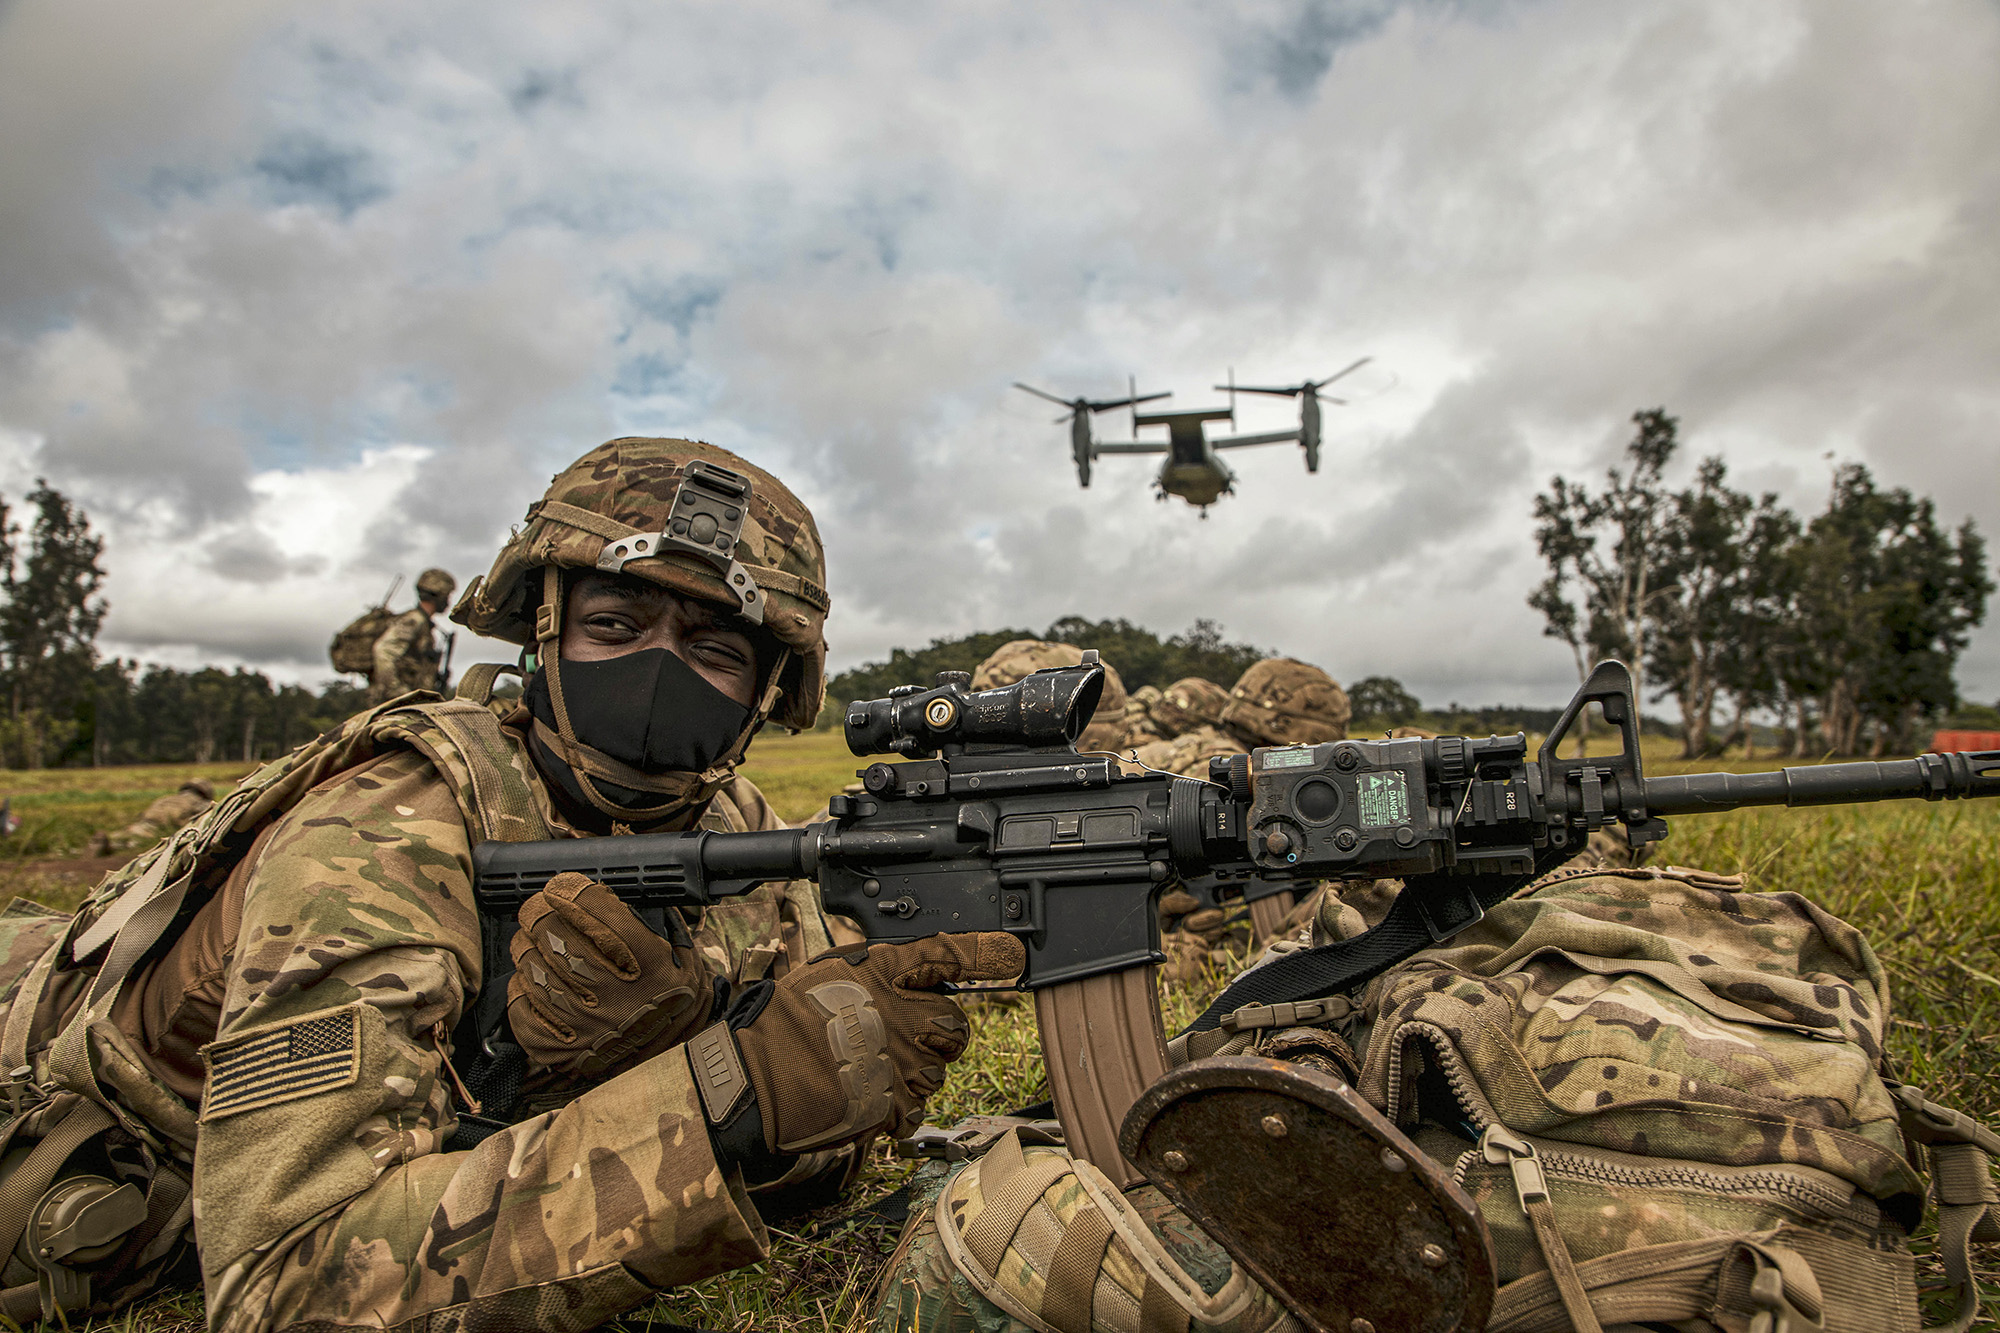 A service member participates in an exercise called Operation Wardog Kila for a joint live-fire exercise at Schofield Barracks, Hawaii, Dec. 30, 2020, with the 25th Combat Aviation Brigade, 25th Infantry Division Artillery units and the U.S. Marine Corps. (Sgt. Sarah D. Sangster/Army)